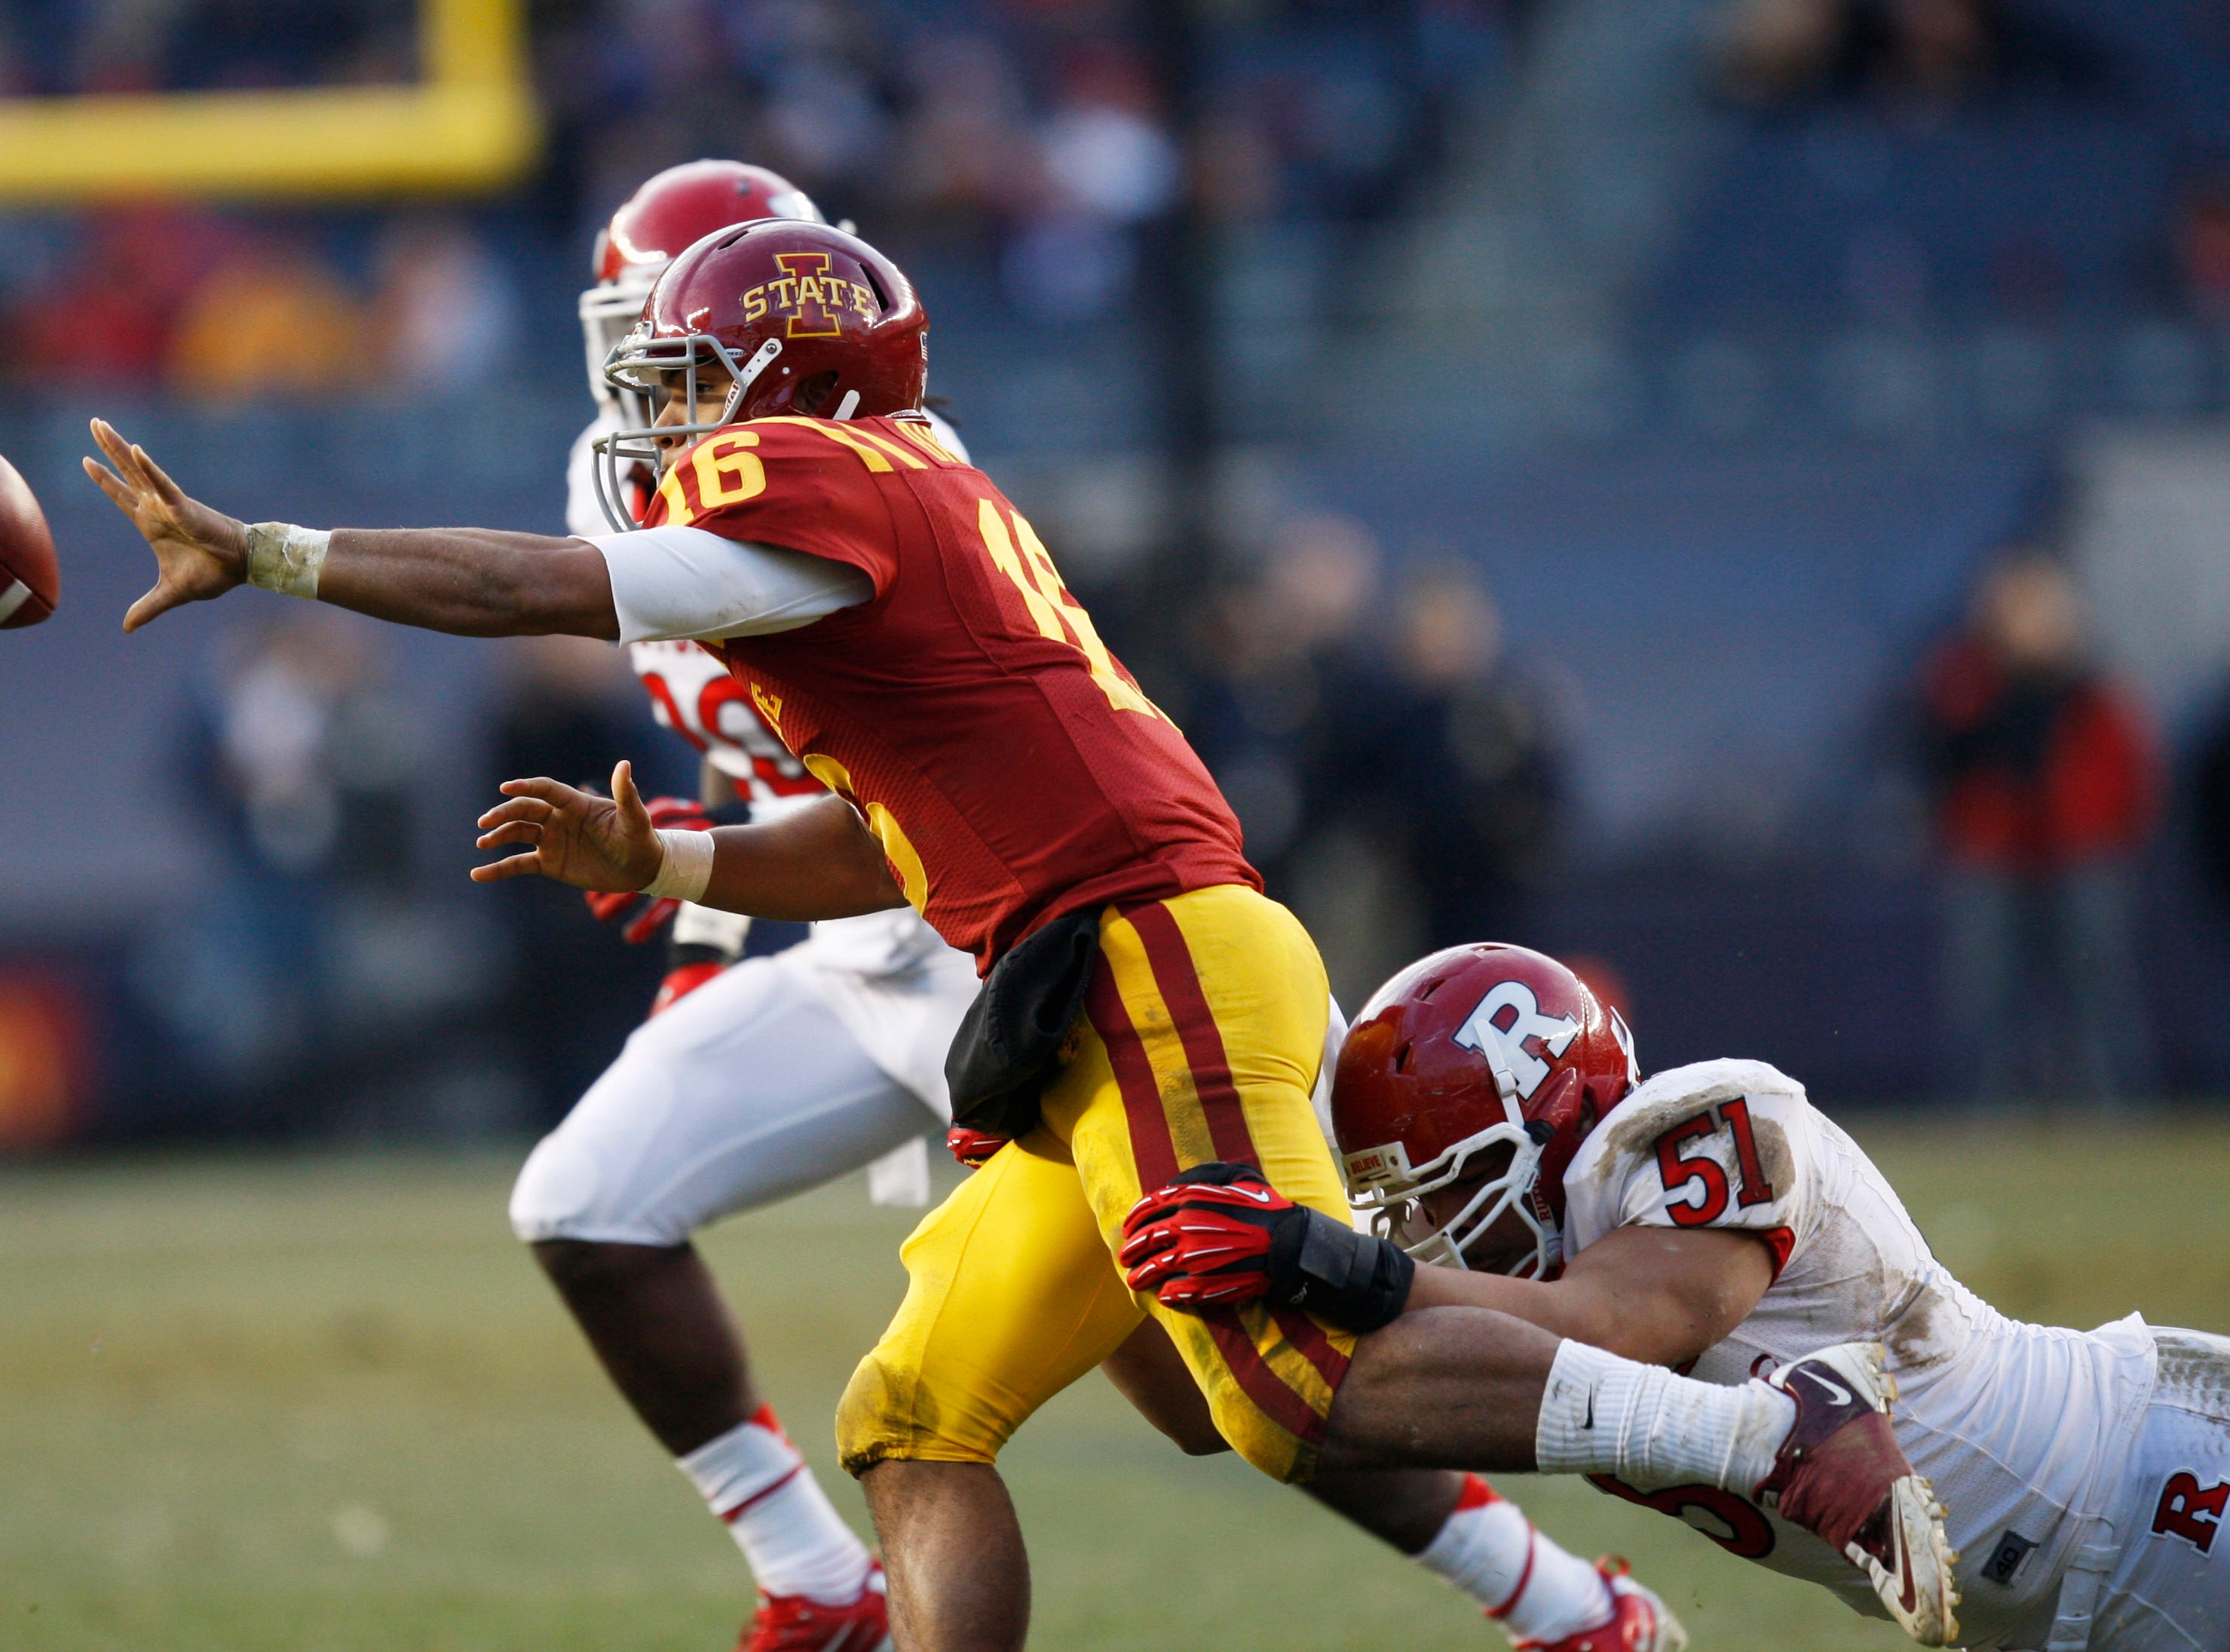 Iowa State Cyclones quarterback Jared Barnett (16) passes the ball while being tackled by Rutgers Scarlet Knights player Manny Abreu (51) during the Pinstripe Bowl at Yankee Stadium. Mandatory Credit: Frances Micklow/The Star-Ledger via USA TODAY Sports